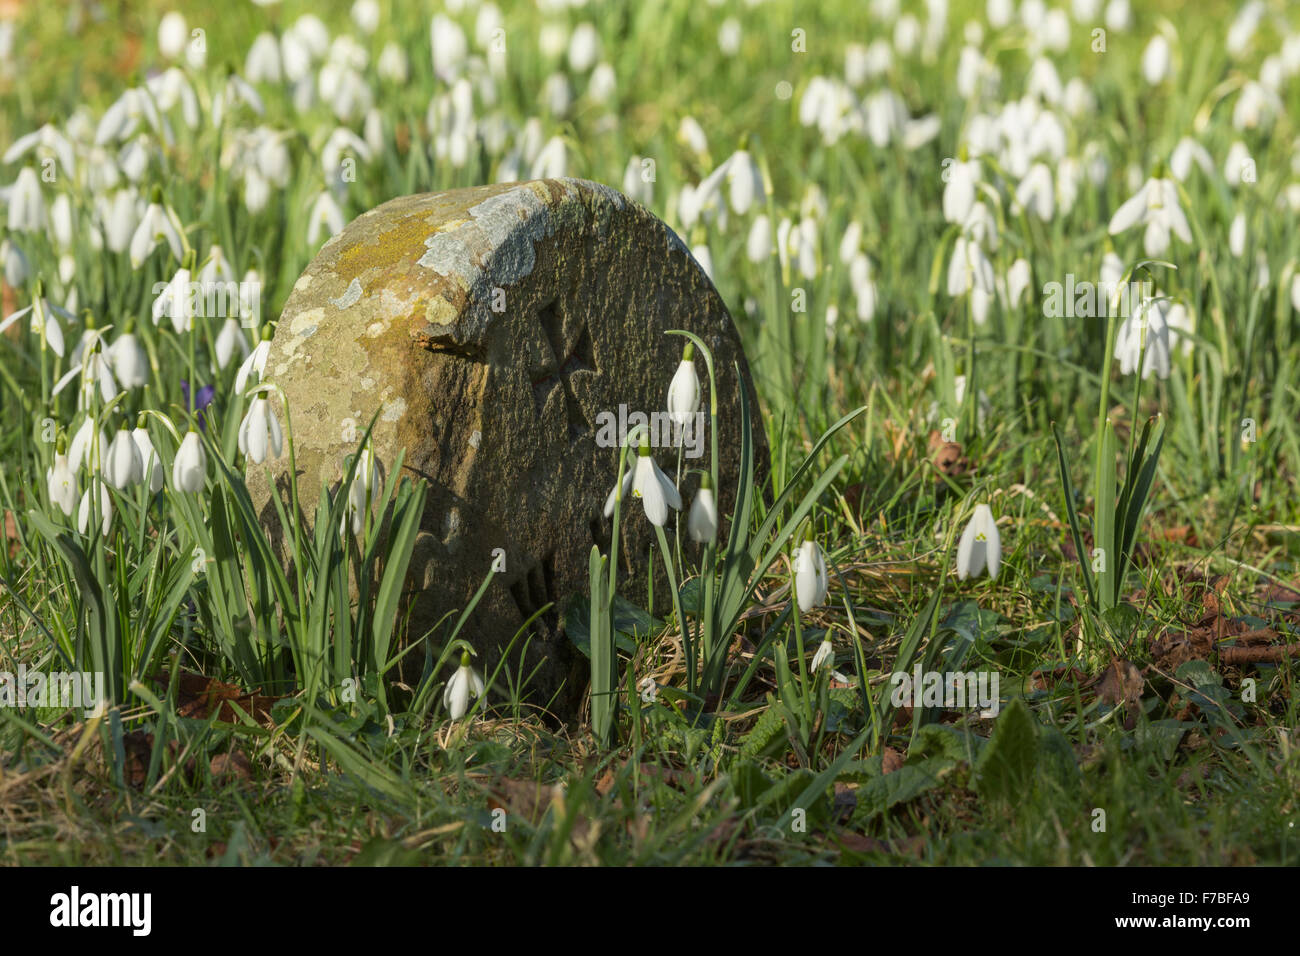 Snowdrops, Galanthus nivalis, surround an old gravestone in a Graveyard in Worcestershire, England. Stock Photo